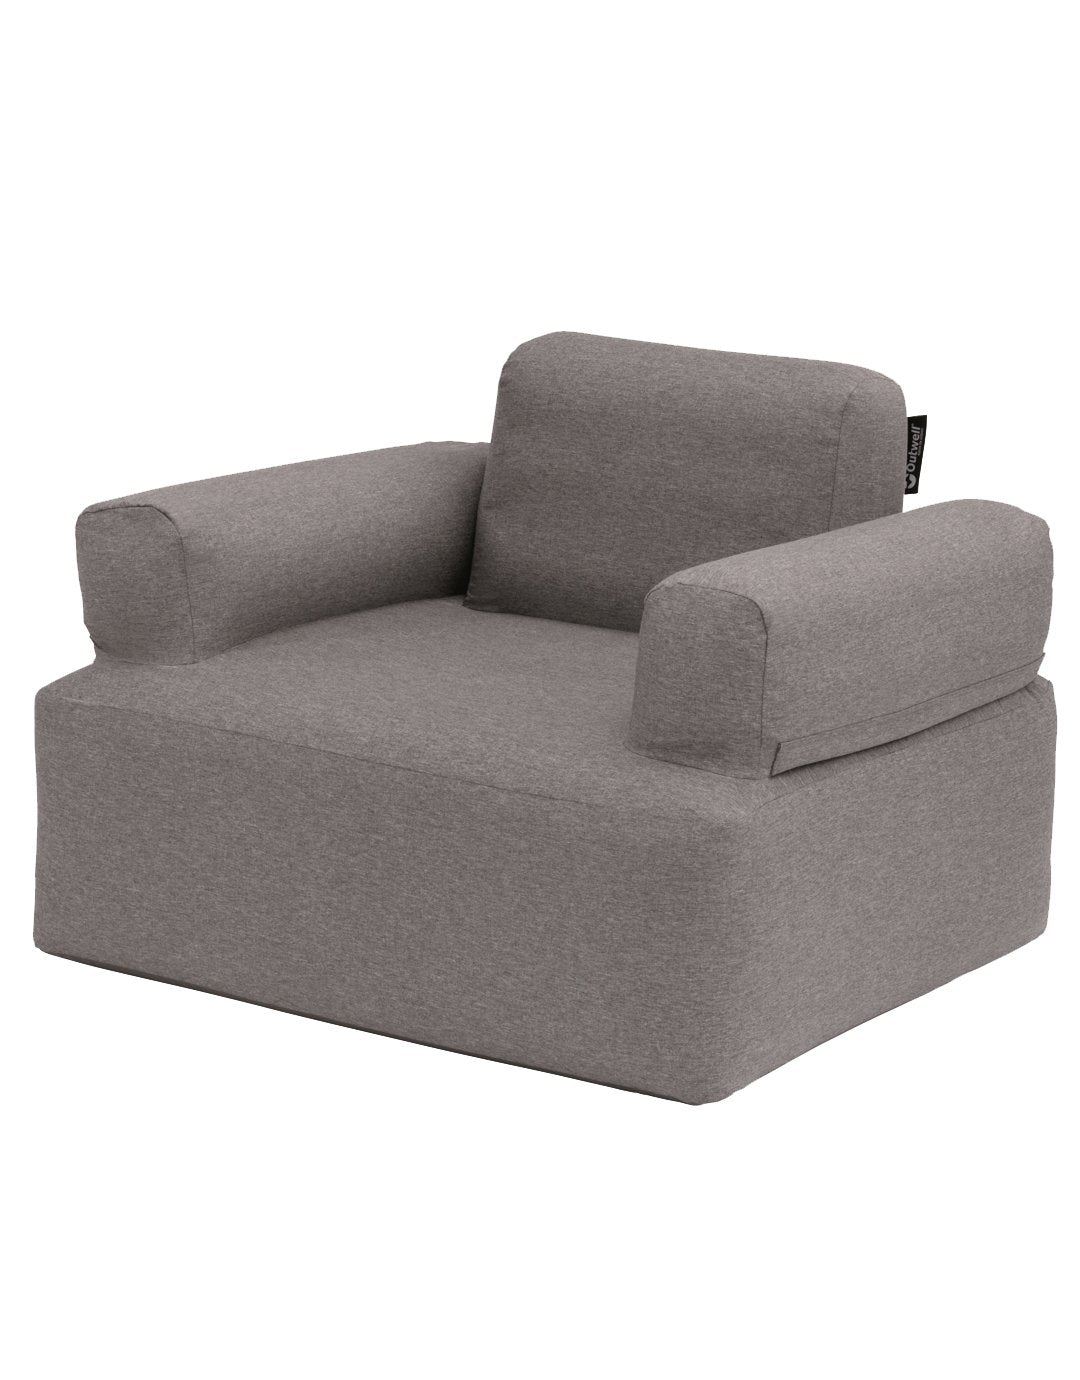 Image of Outwell Lake Huron Single Sofa